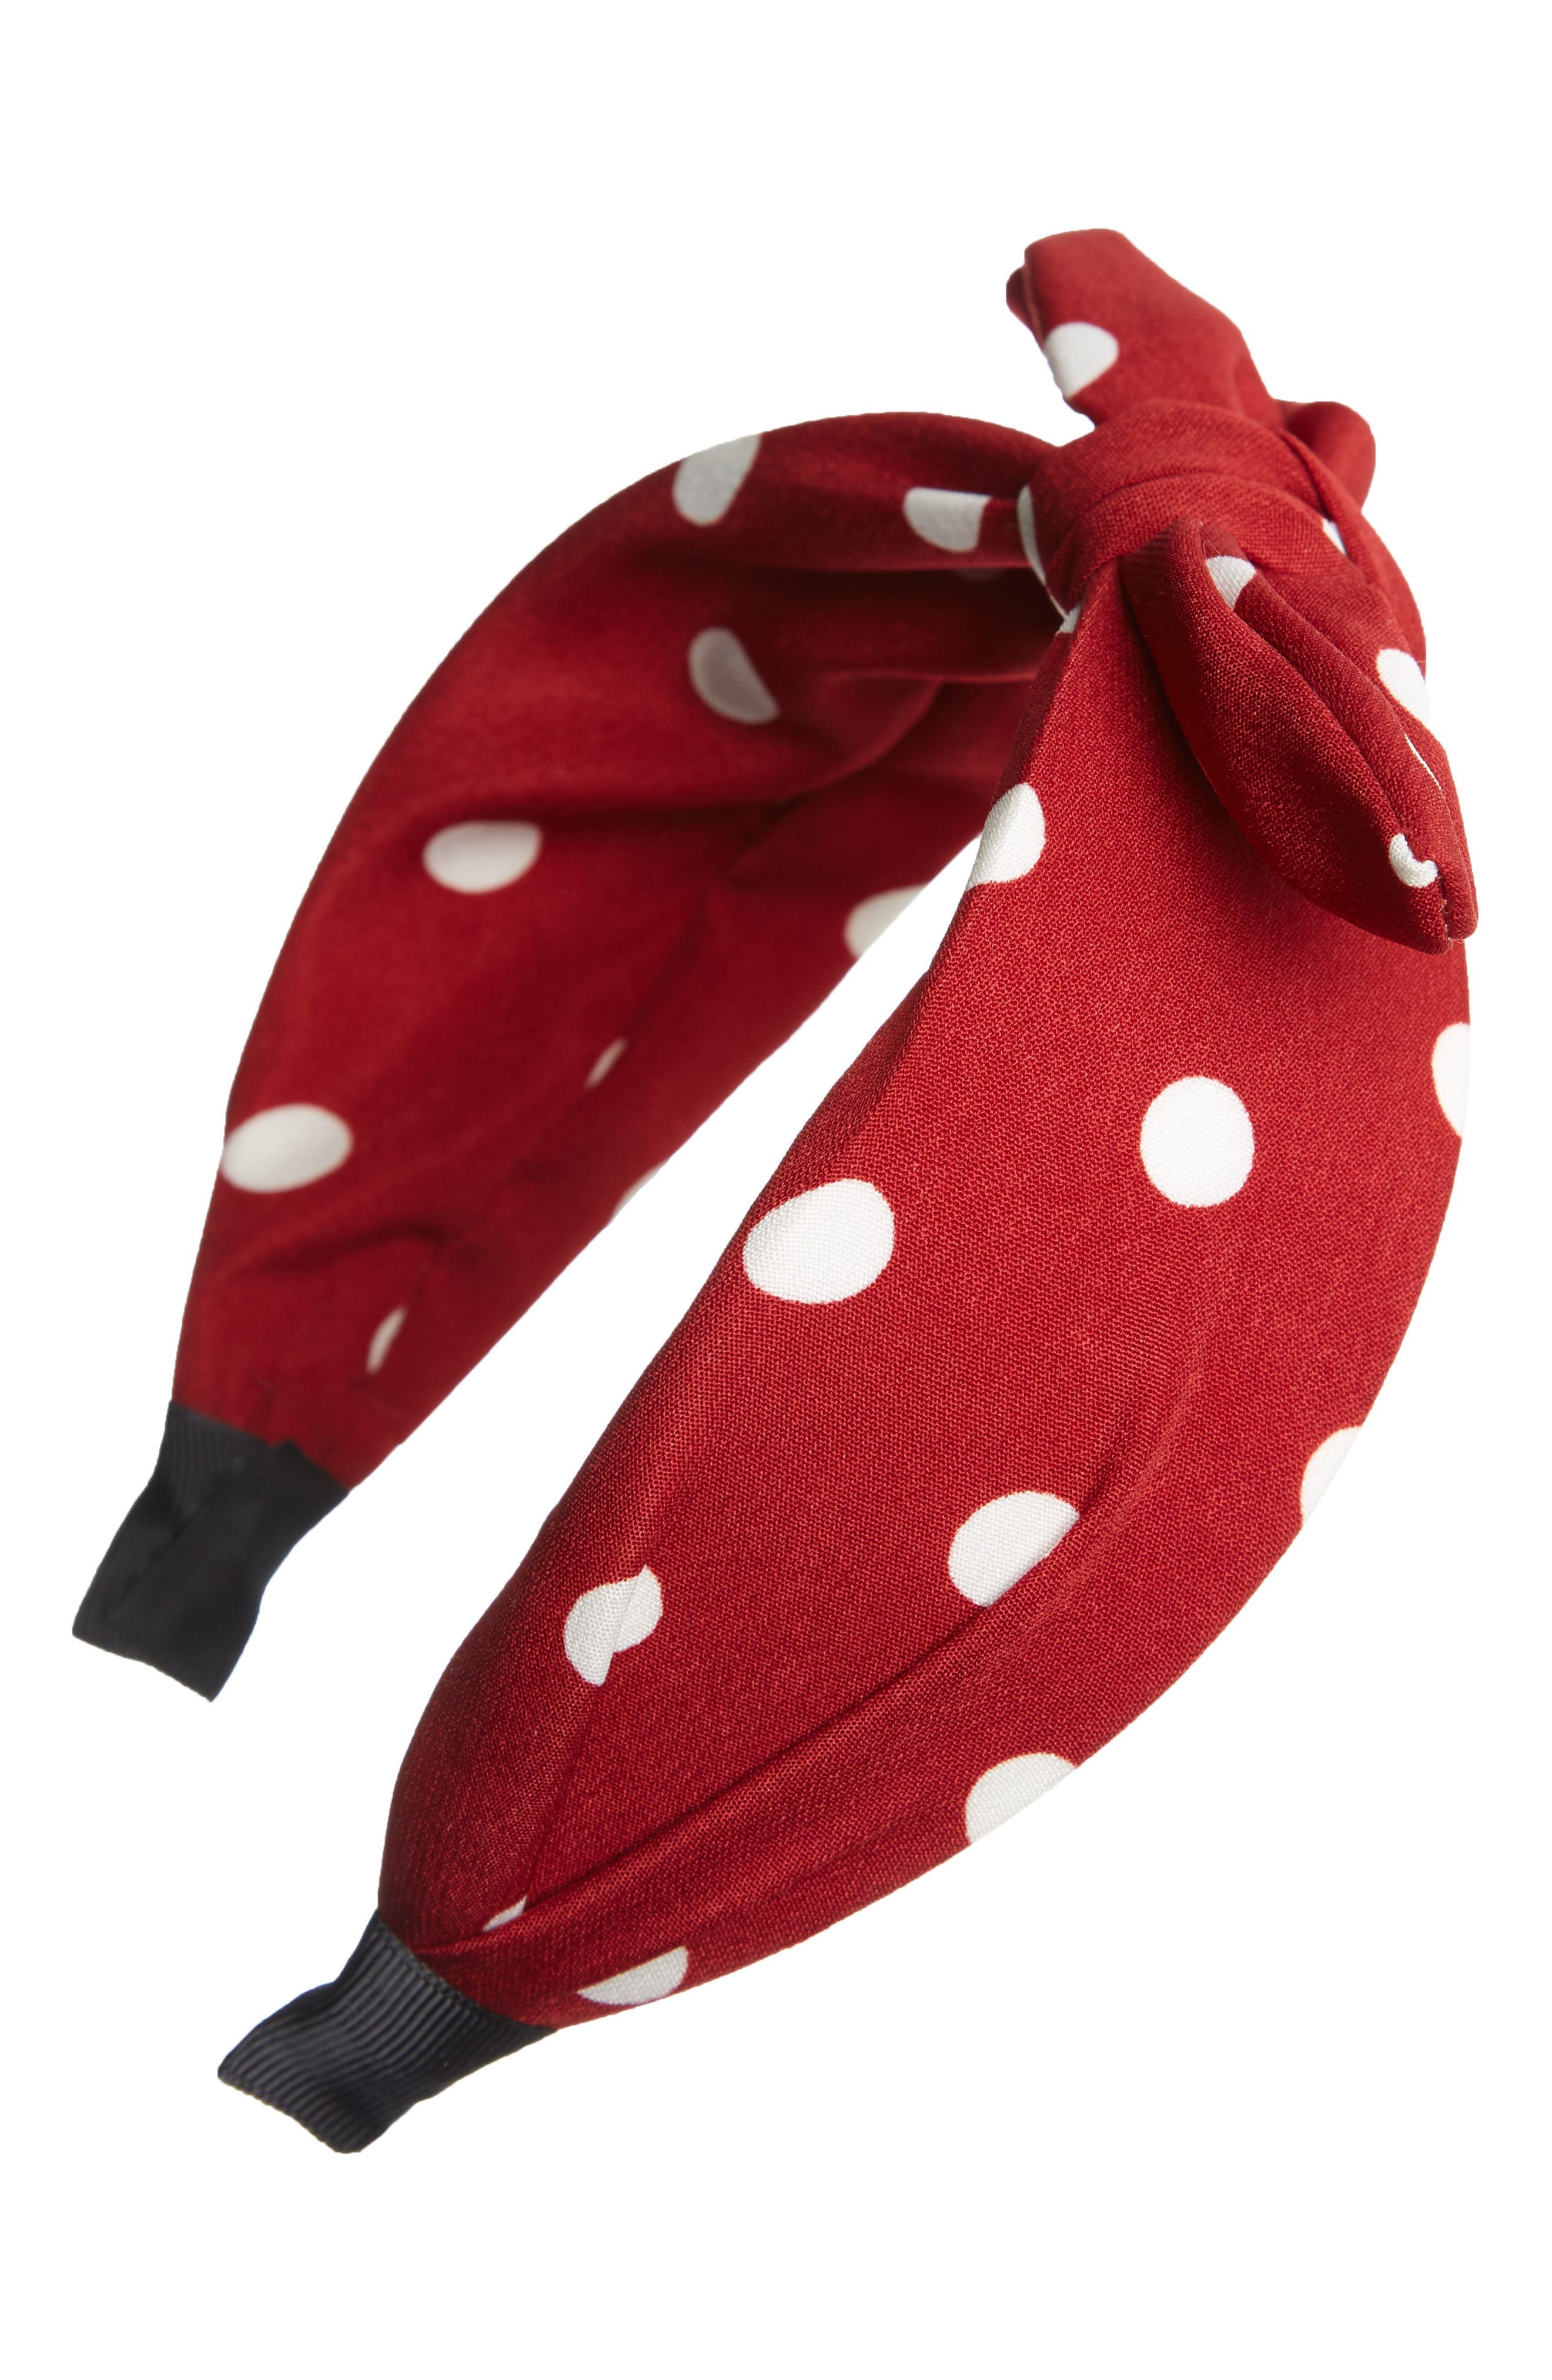 1940s Hairstyles- History of Women's Hairstyles Tasha Polka Dot Bow Headband Size One Size - Red $24.00 AT vintagedancer.com